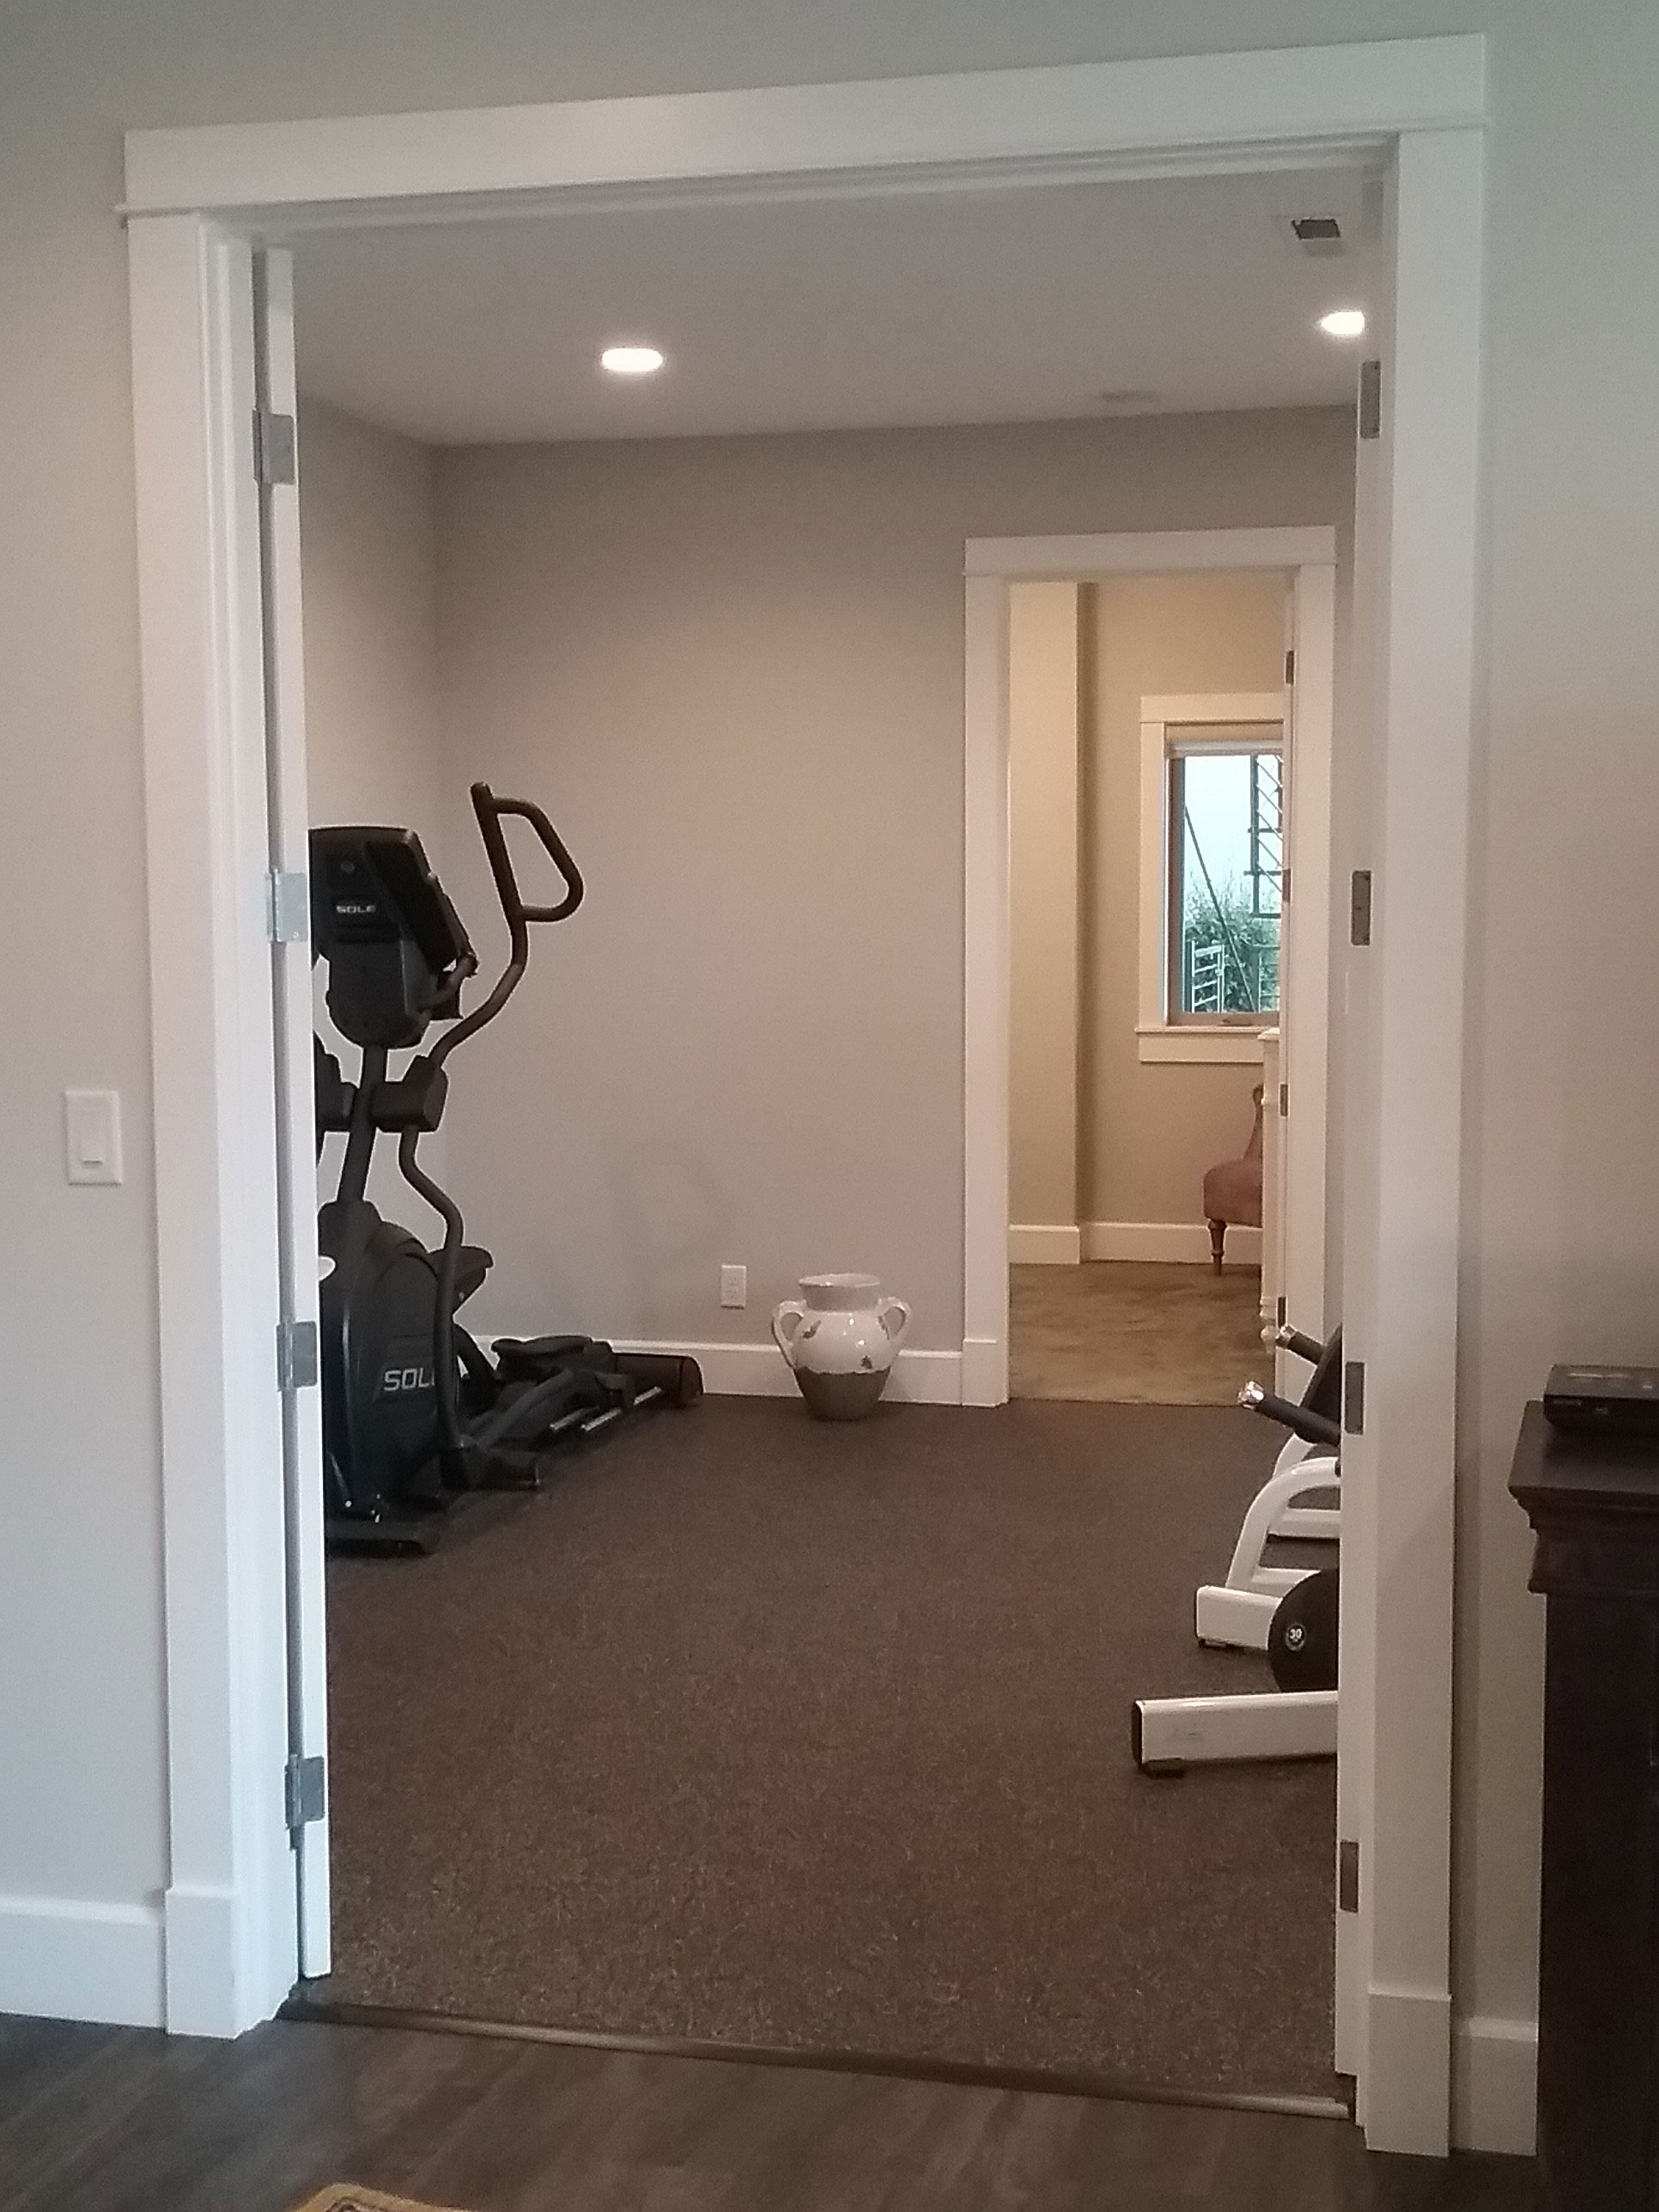 Customer review image of  in Downstairs exercise room